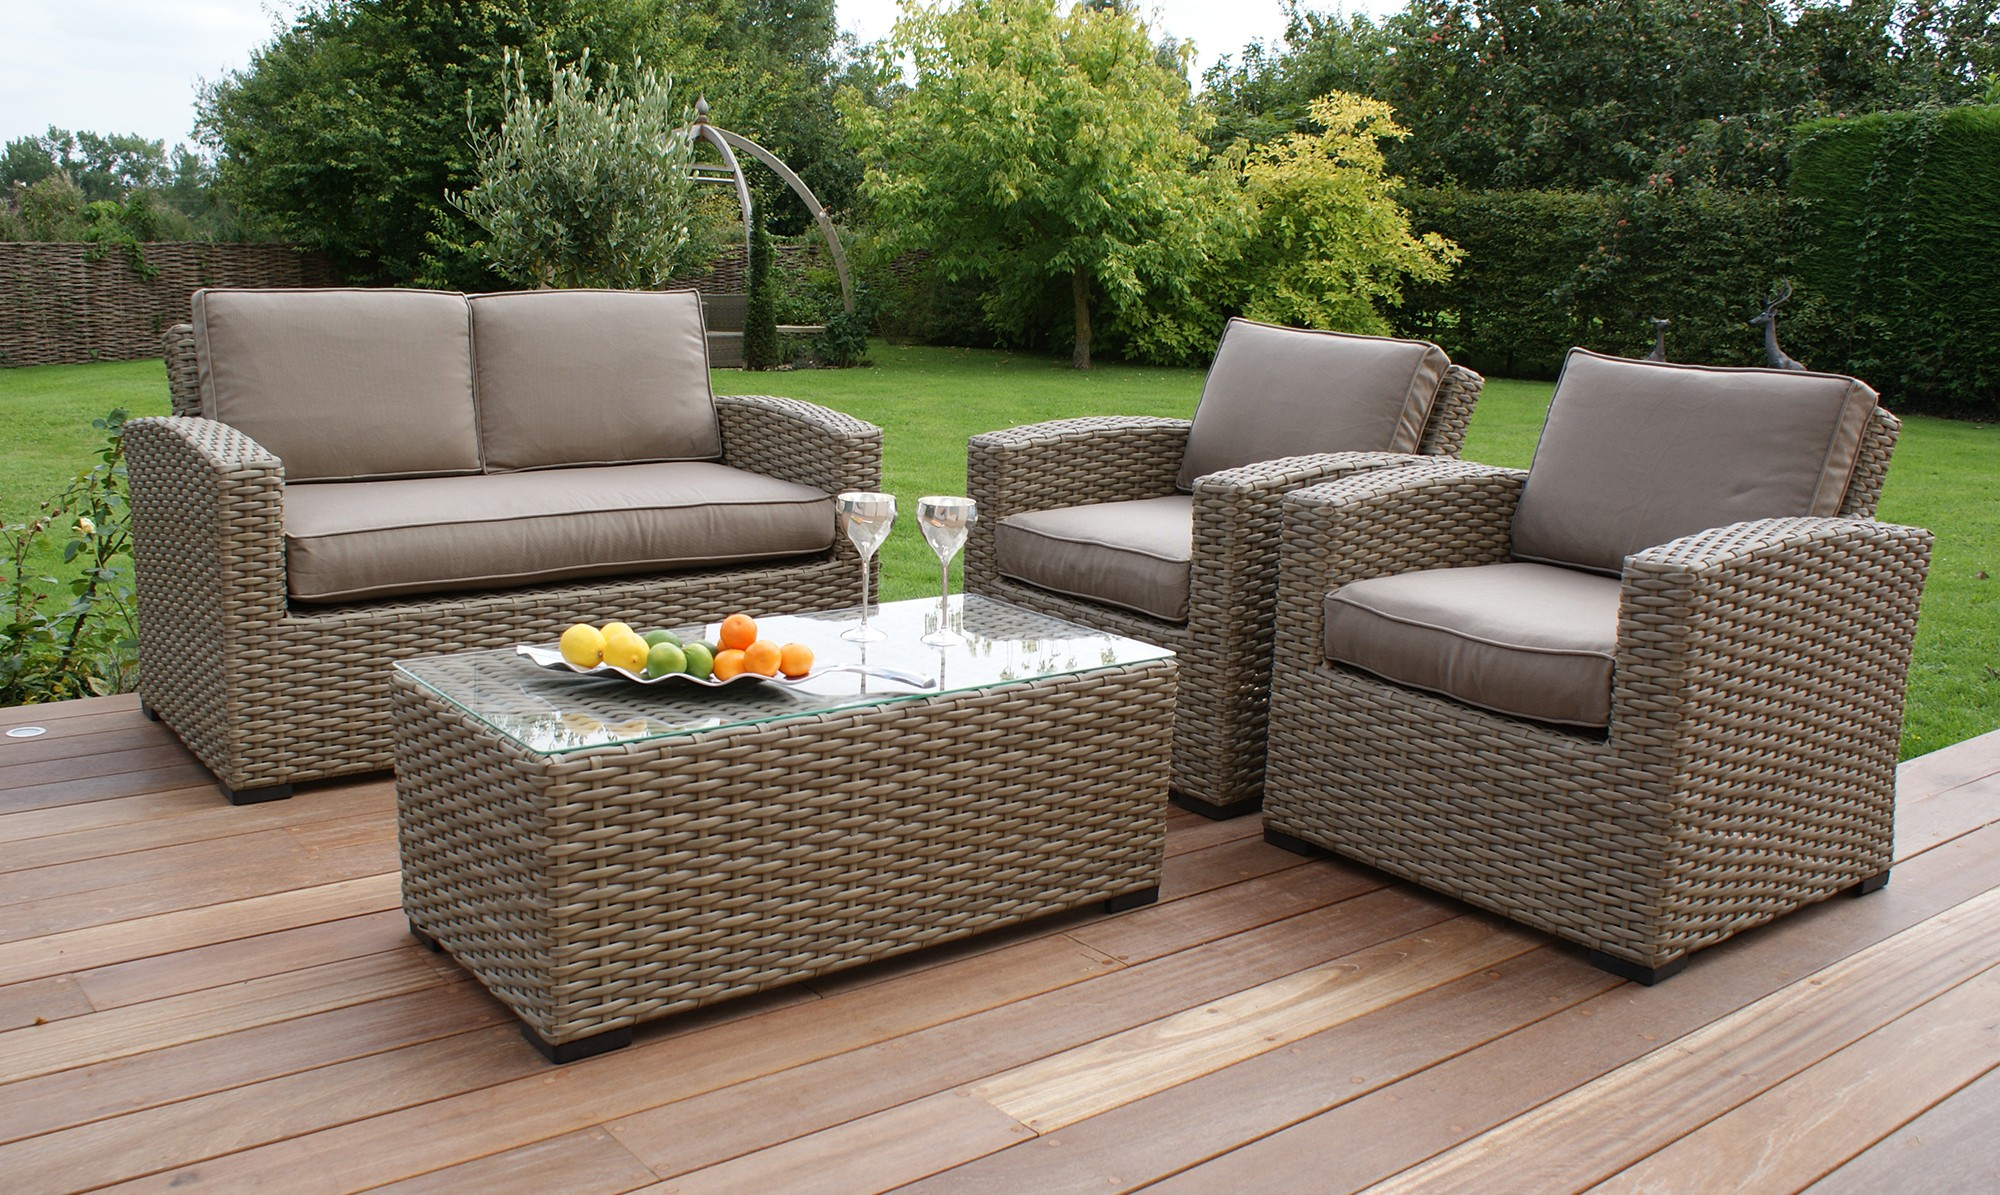 Rattan Garden Furniture Set wicker garden furniture sets boutdoor rattan garden furniture which rattan  garden MNZMIUH